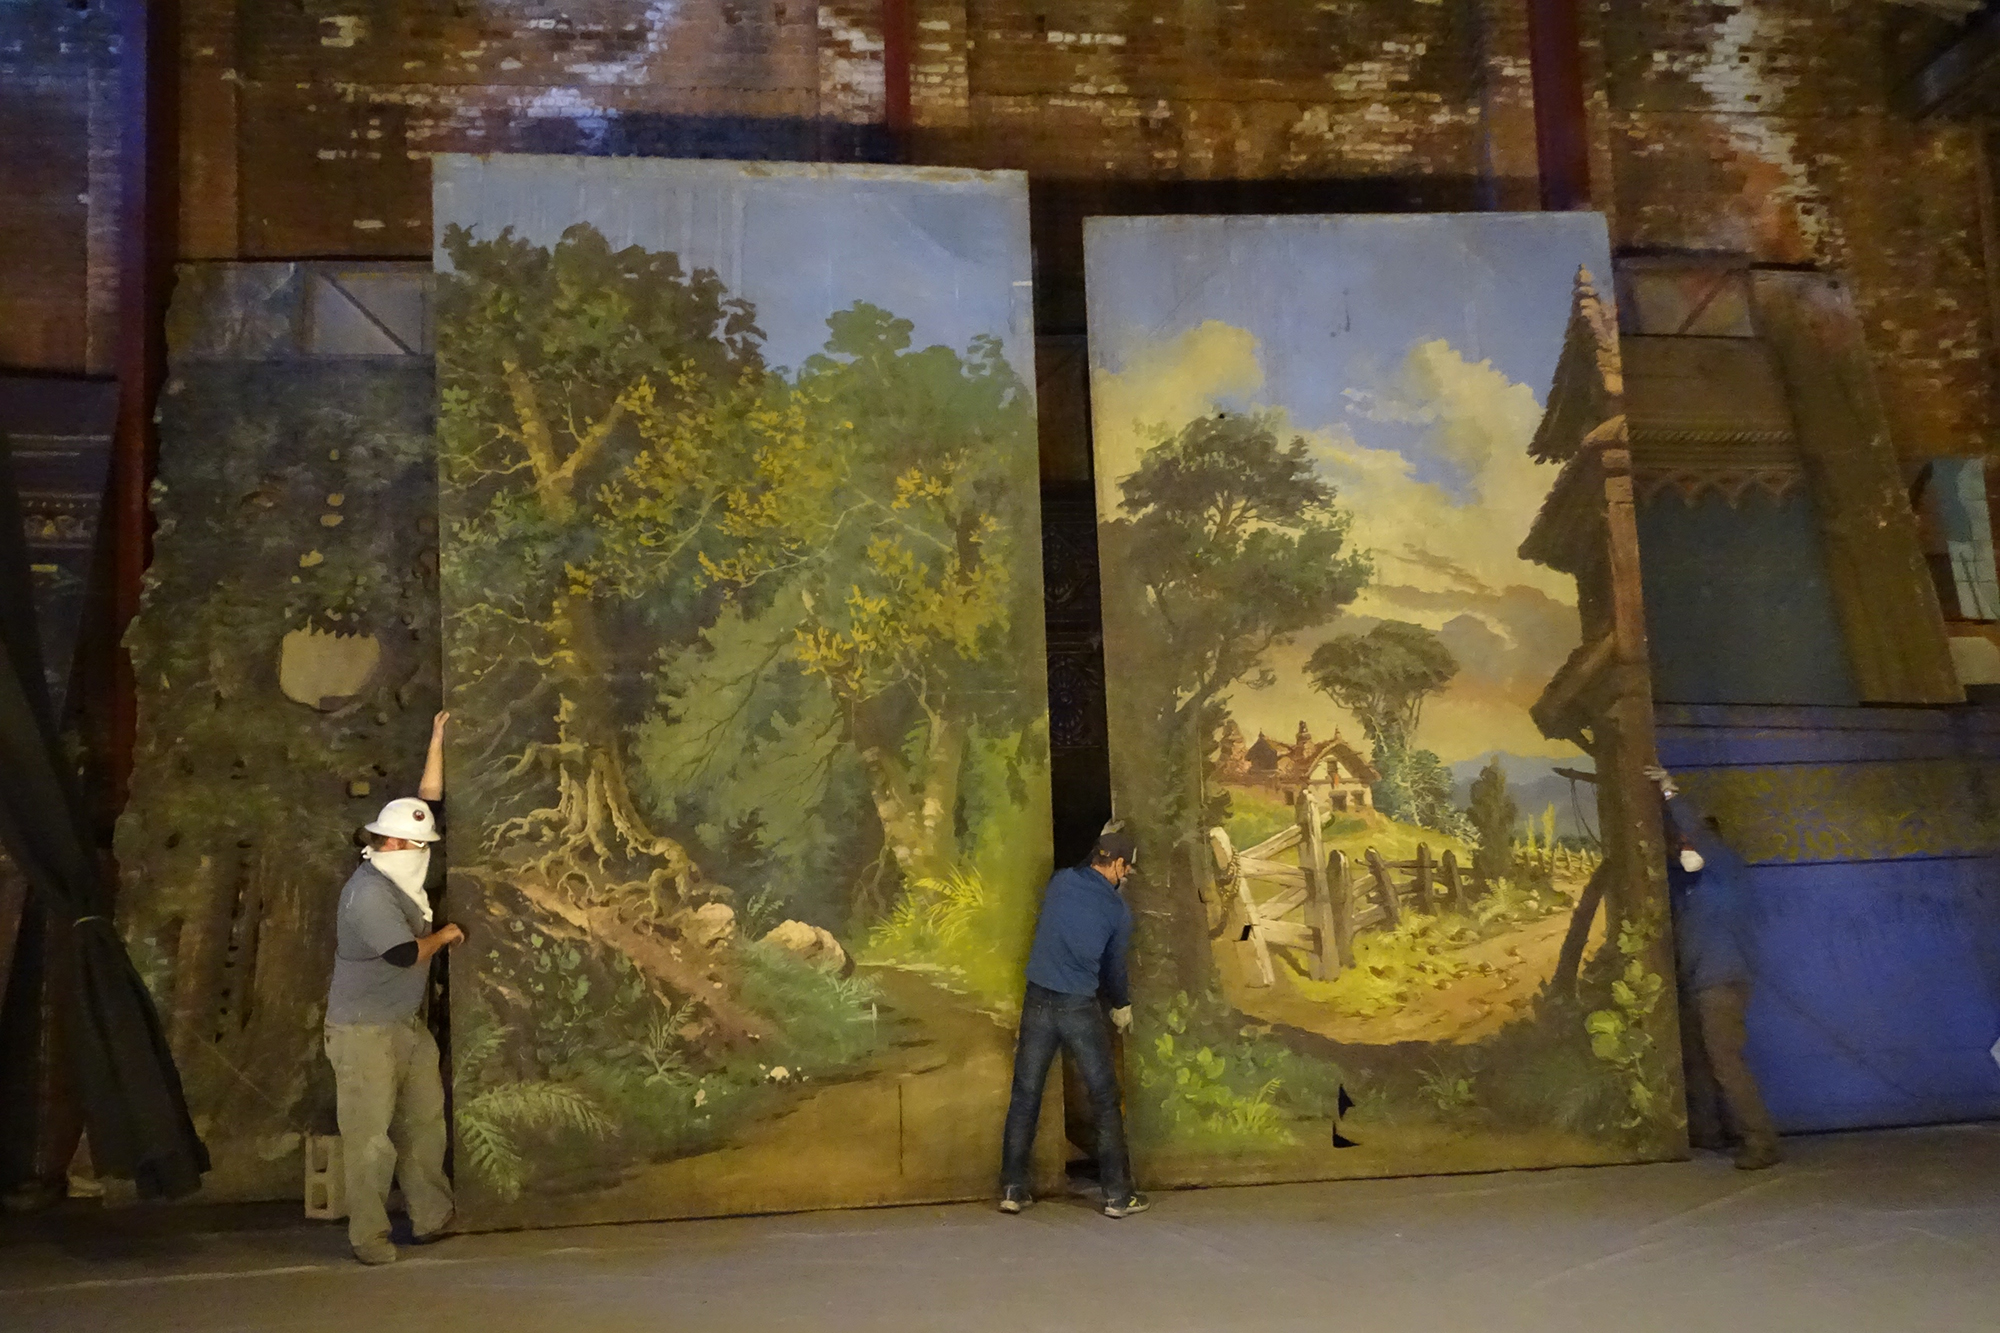 Panels from set scenery found in the Tabor Opera House.